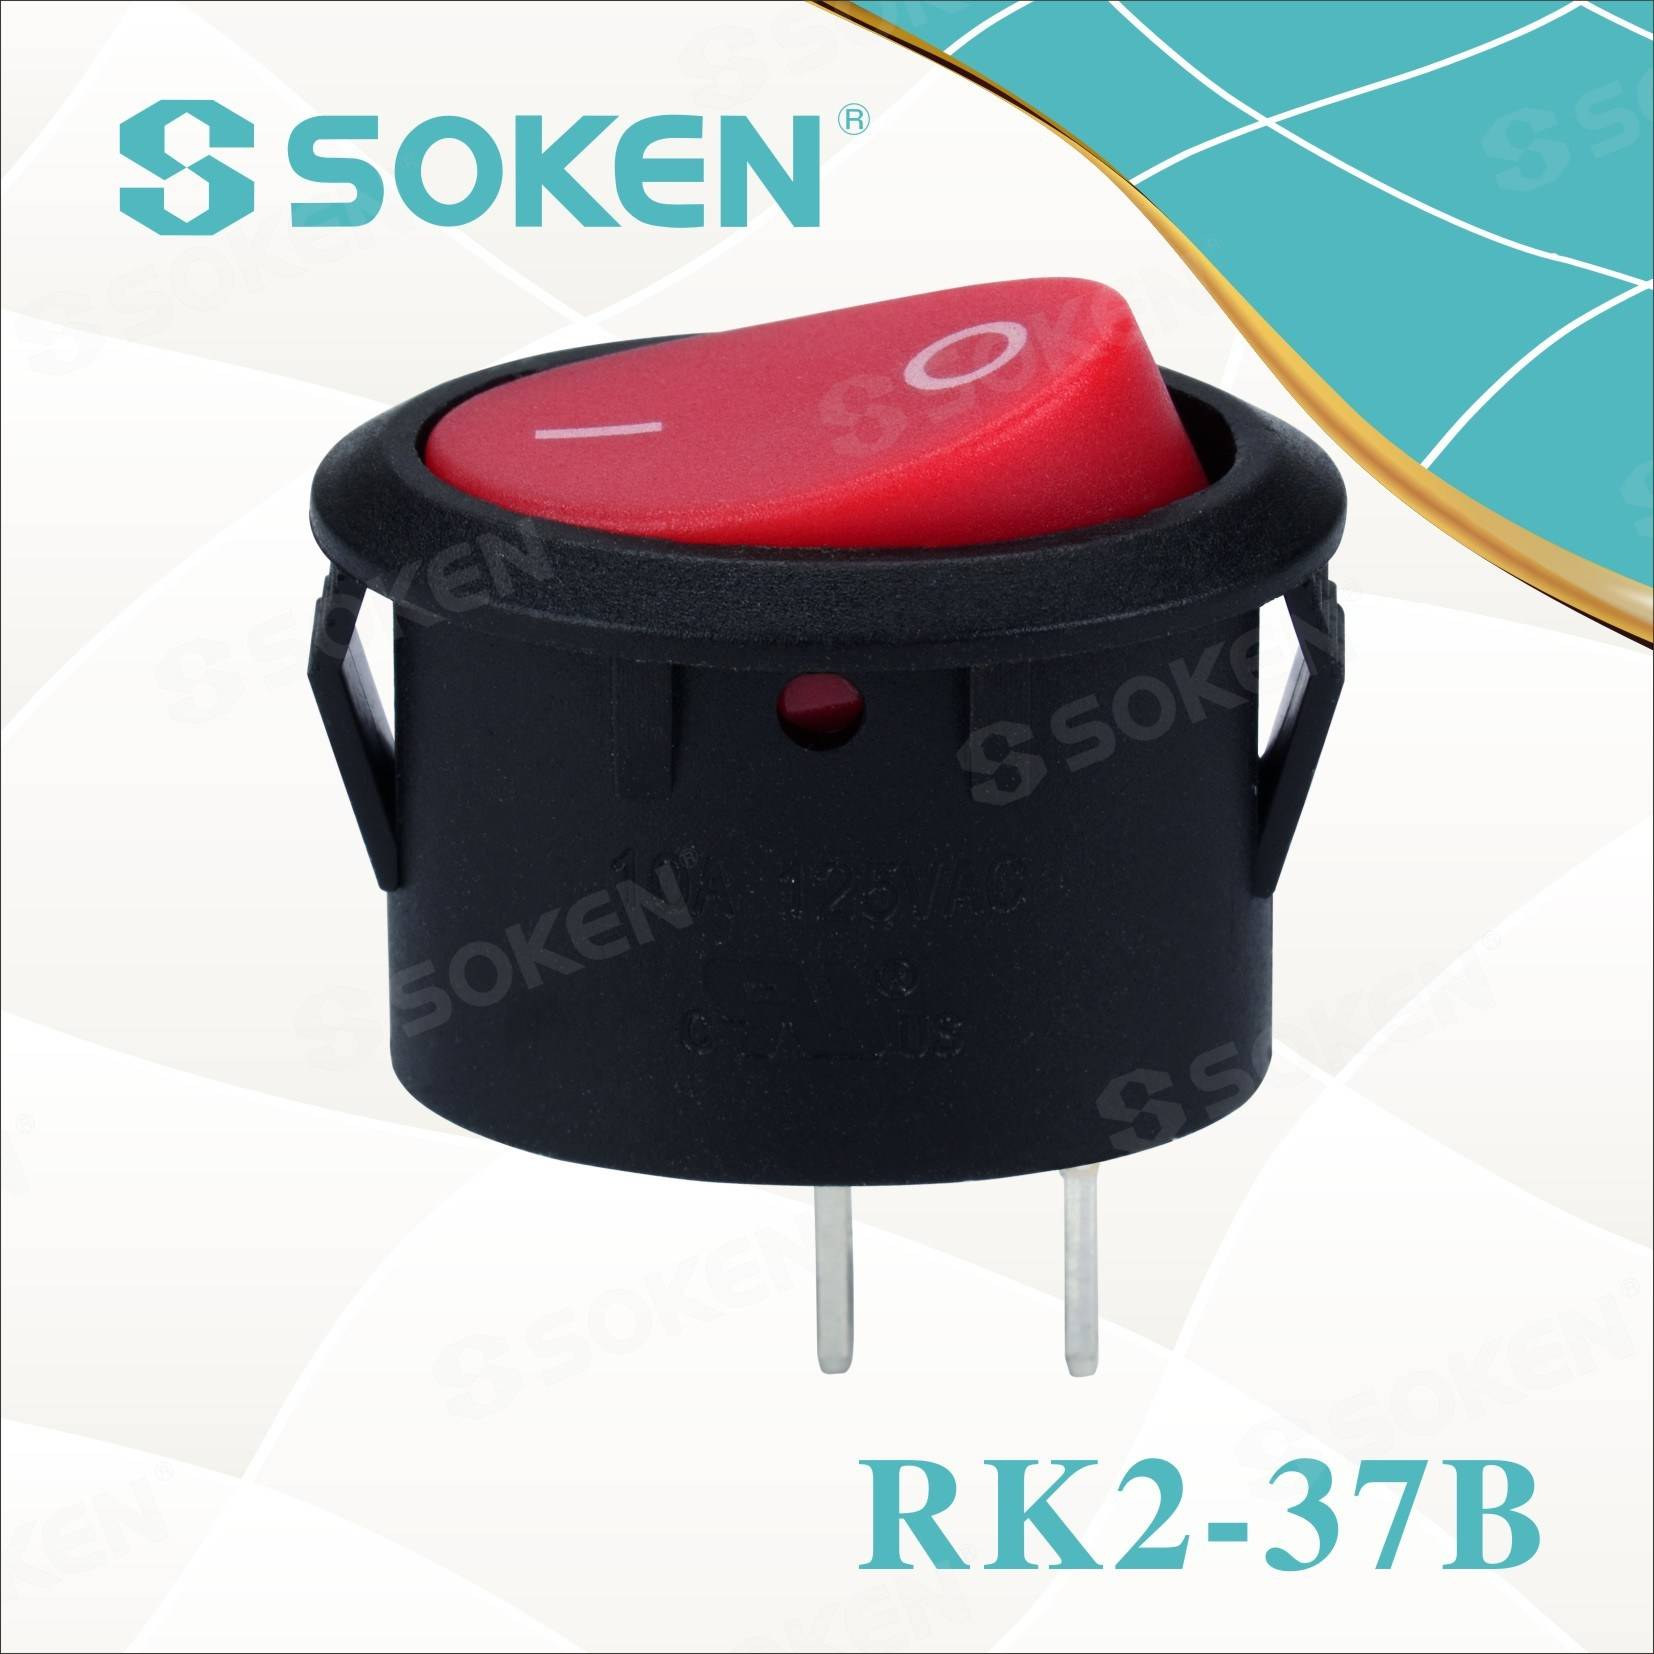 Oval Rocker Switch Rk2-37b